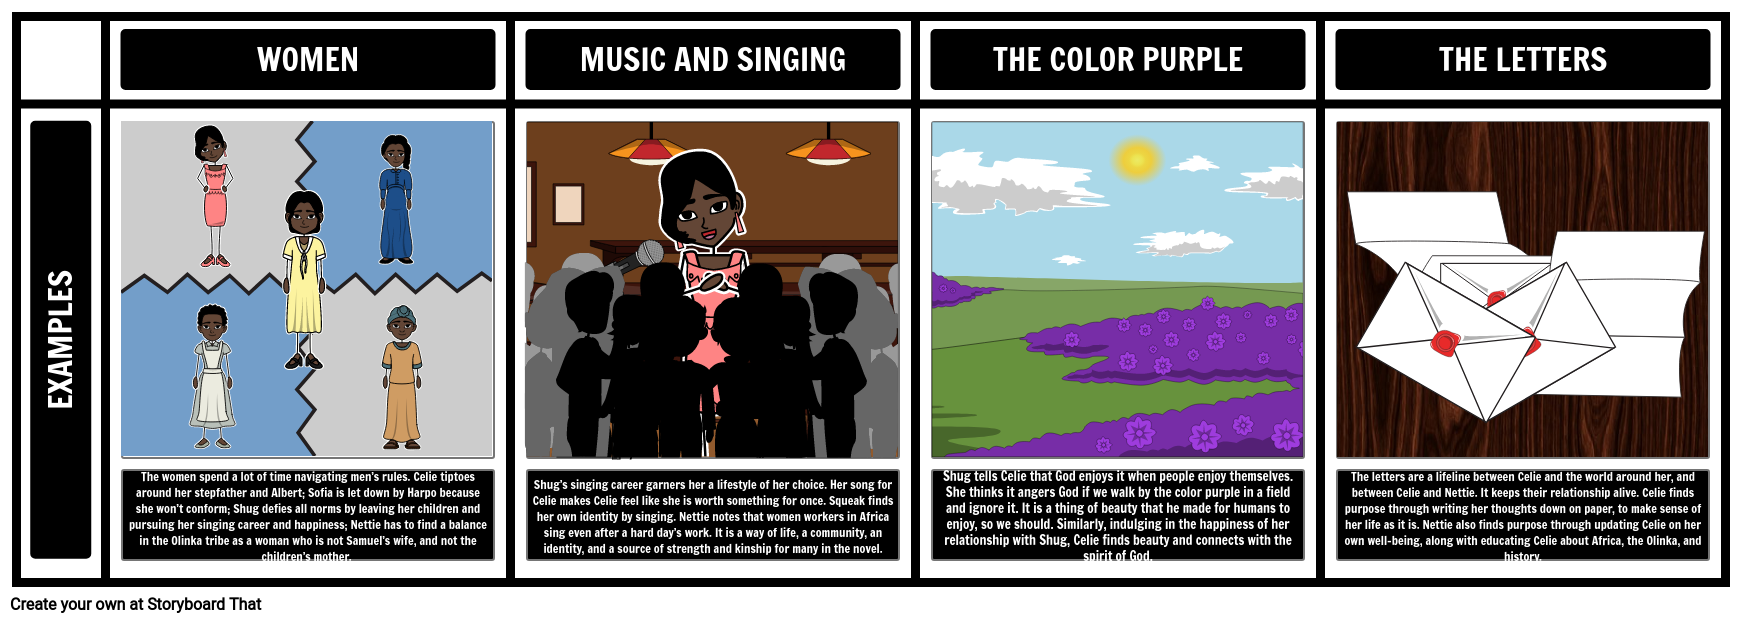 Themes, Symbols, and Motifs in The Color Purple